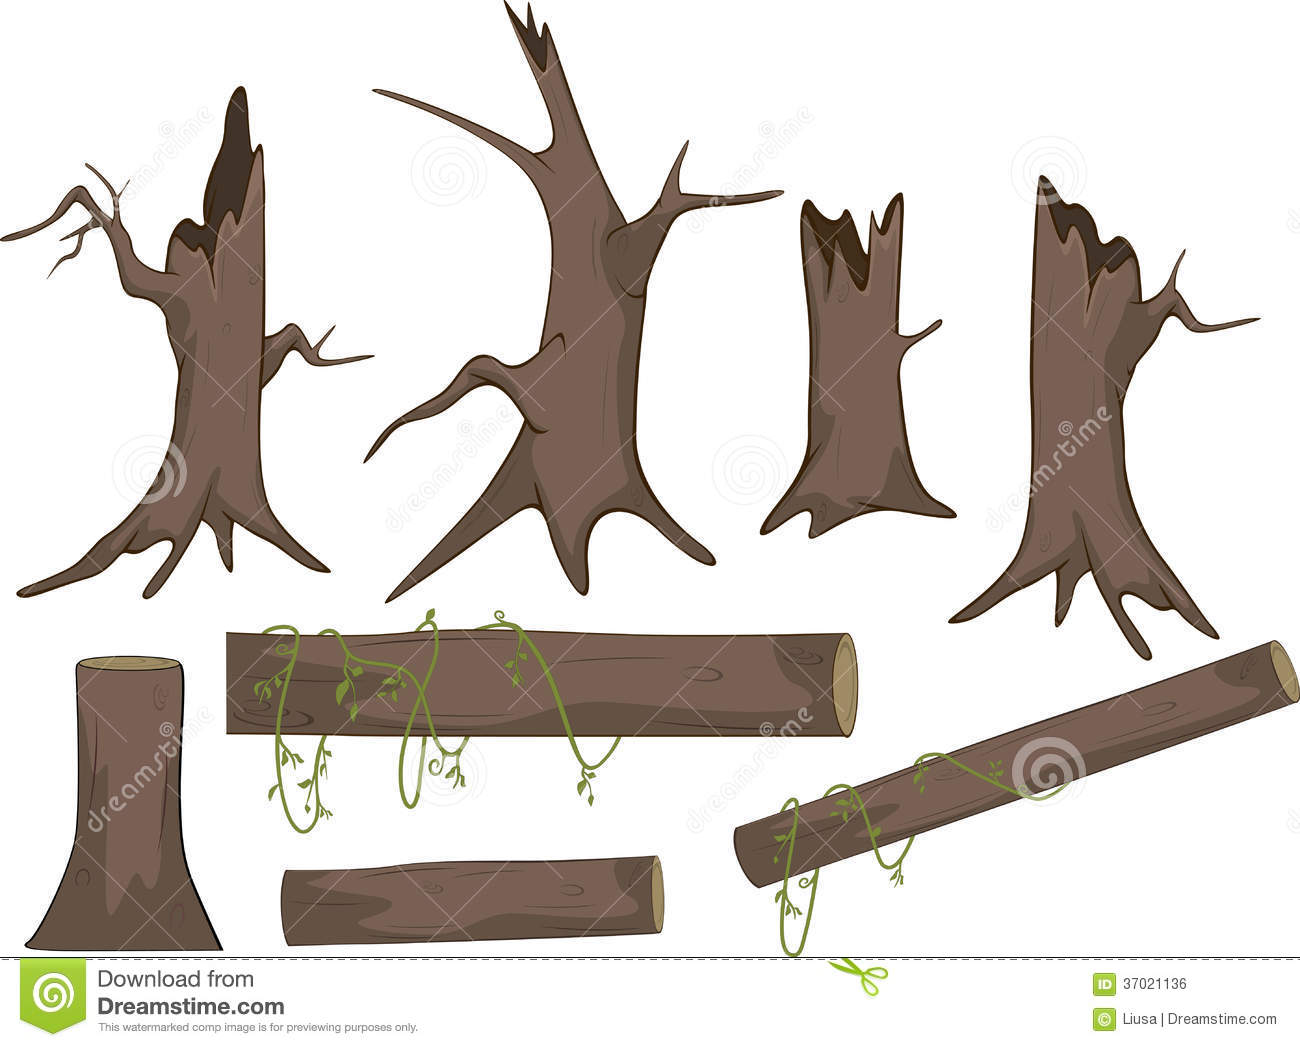 Dried tree log clipart 20 free Cliparts | Download images ...